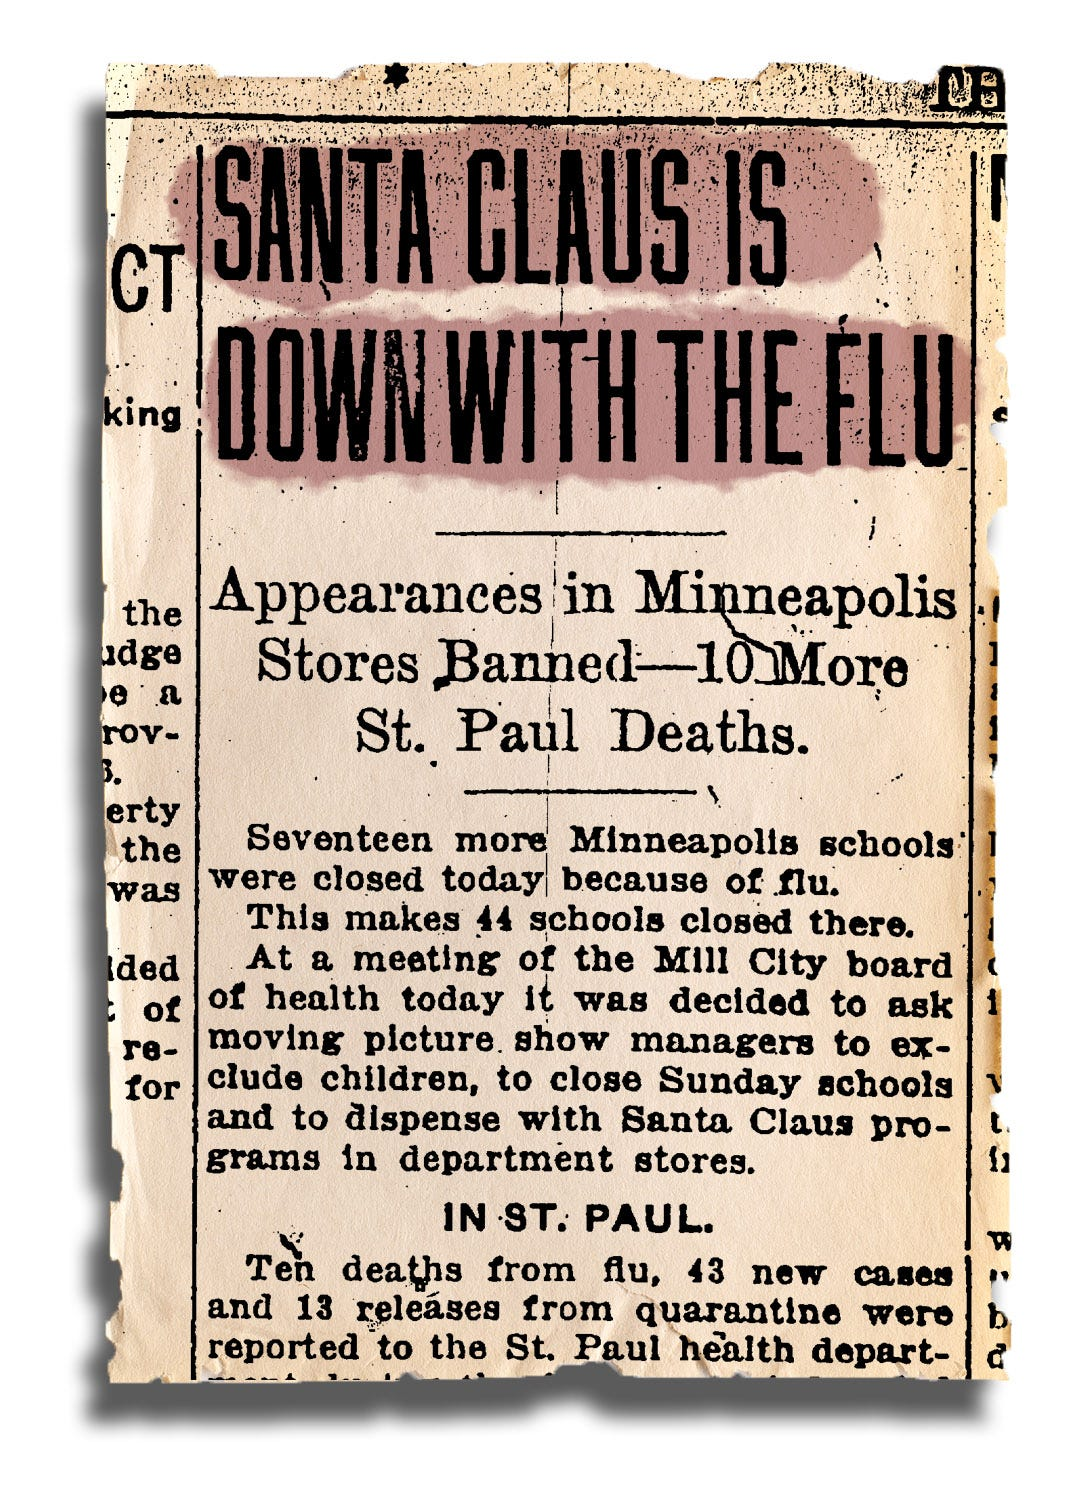 """On Dec. 6, the St. Paul Daily News announced that """"SANTA CLAUS IS DOWN WITH THE FLU."""""""